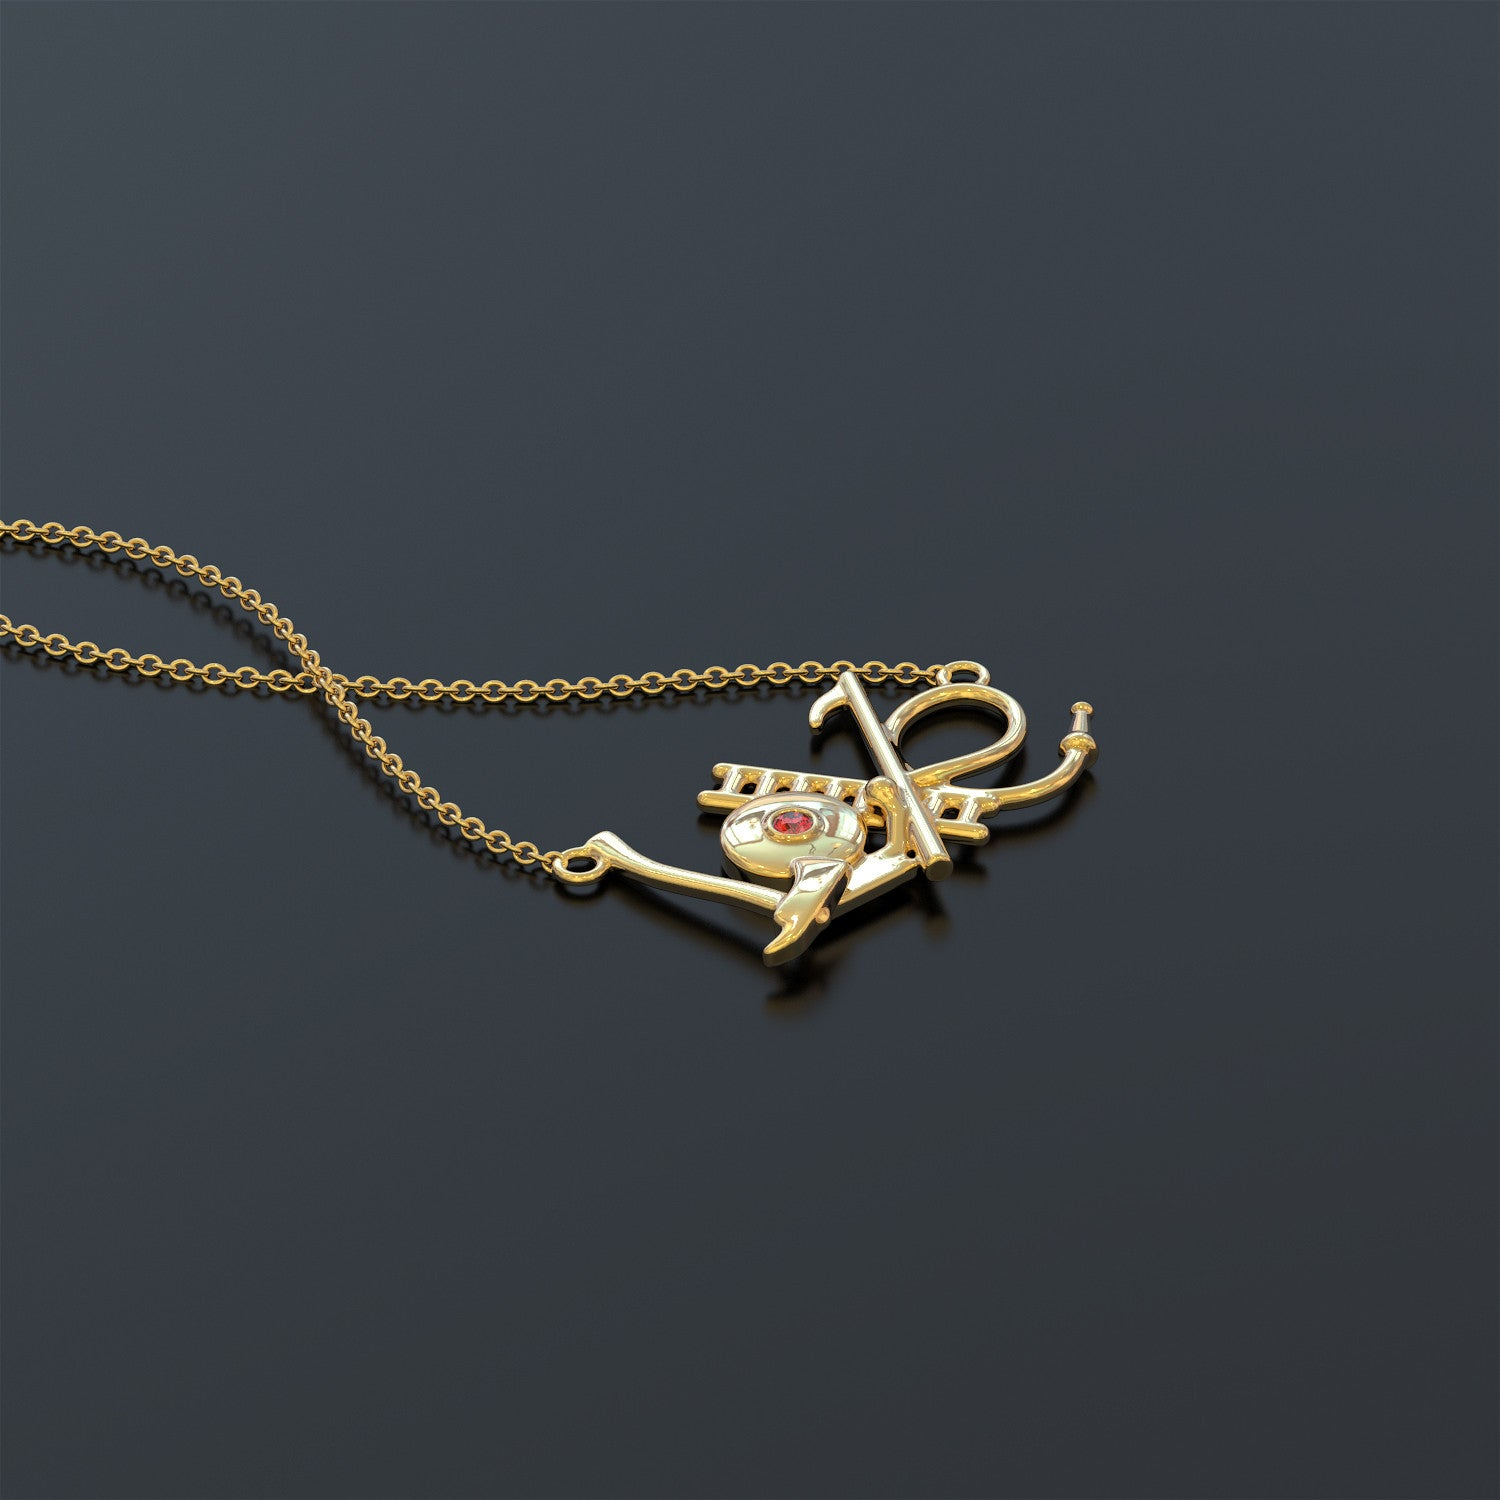 Firefighter's Love Necklace